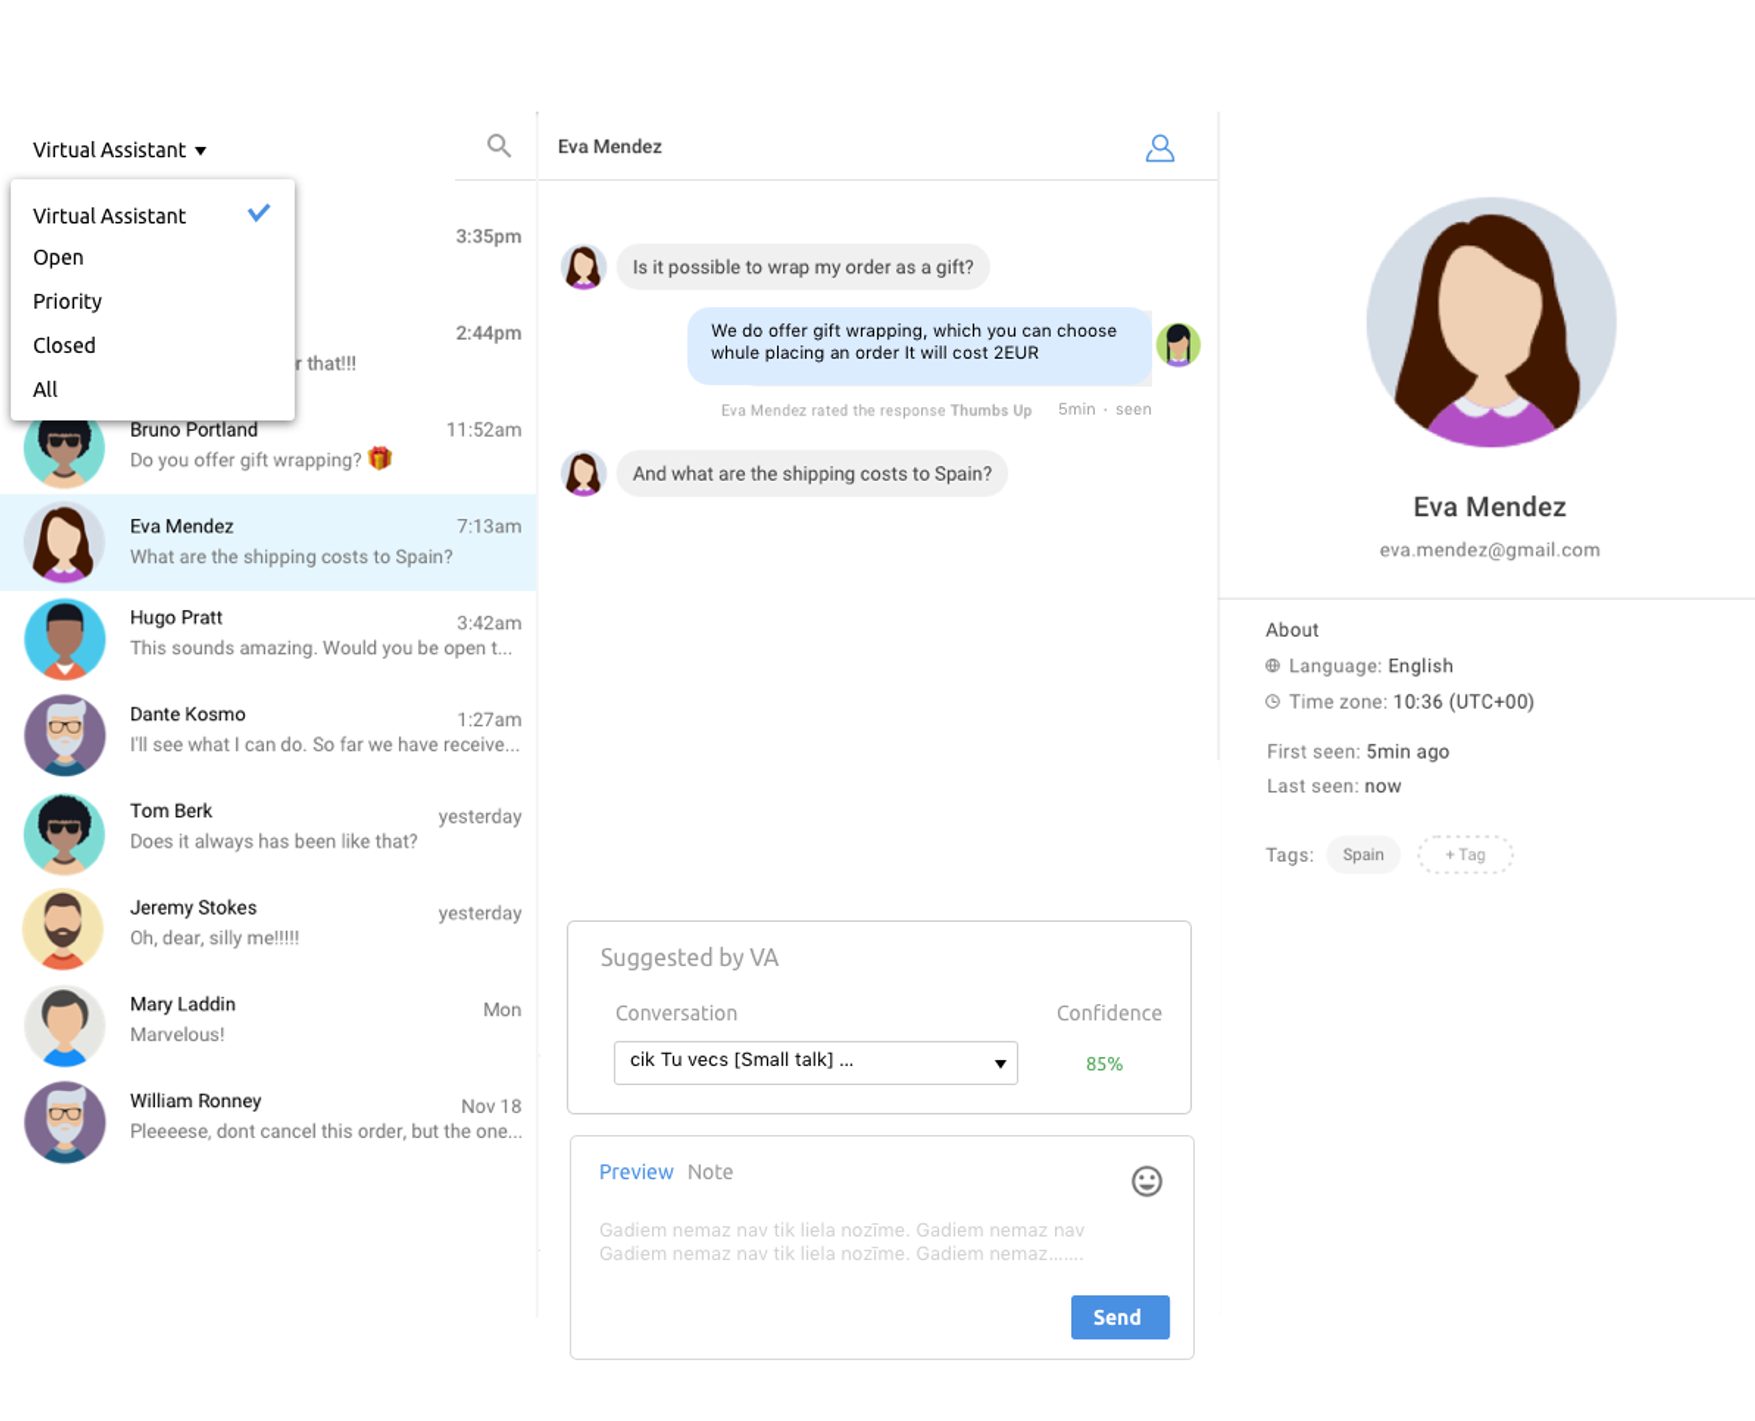 Seamless handoff - Regardless of how well trained the bot is, there may still be times when it needs to hand off the conversation to a human being. Chatsper chatbot can easily route the conversation to a live agent, so no question is left unanswered.